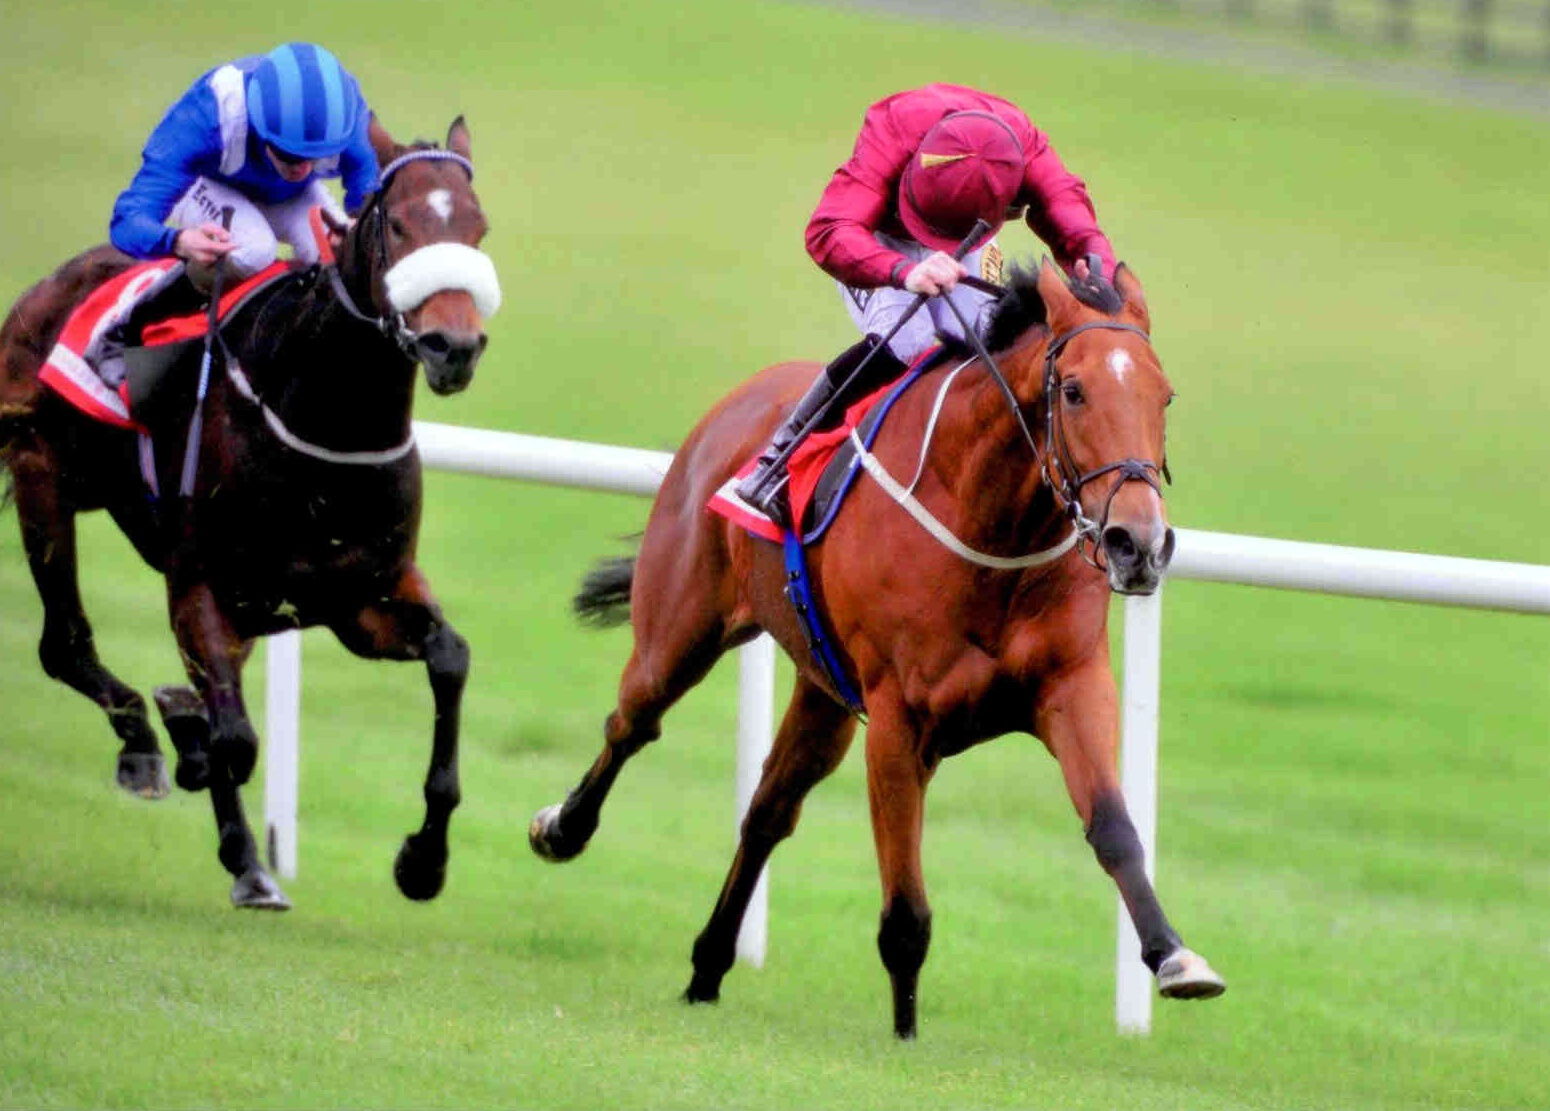 QUEEN CATRINE wins the Garnet Stakes (Listed) at Naas on October 18th 2015